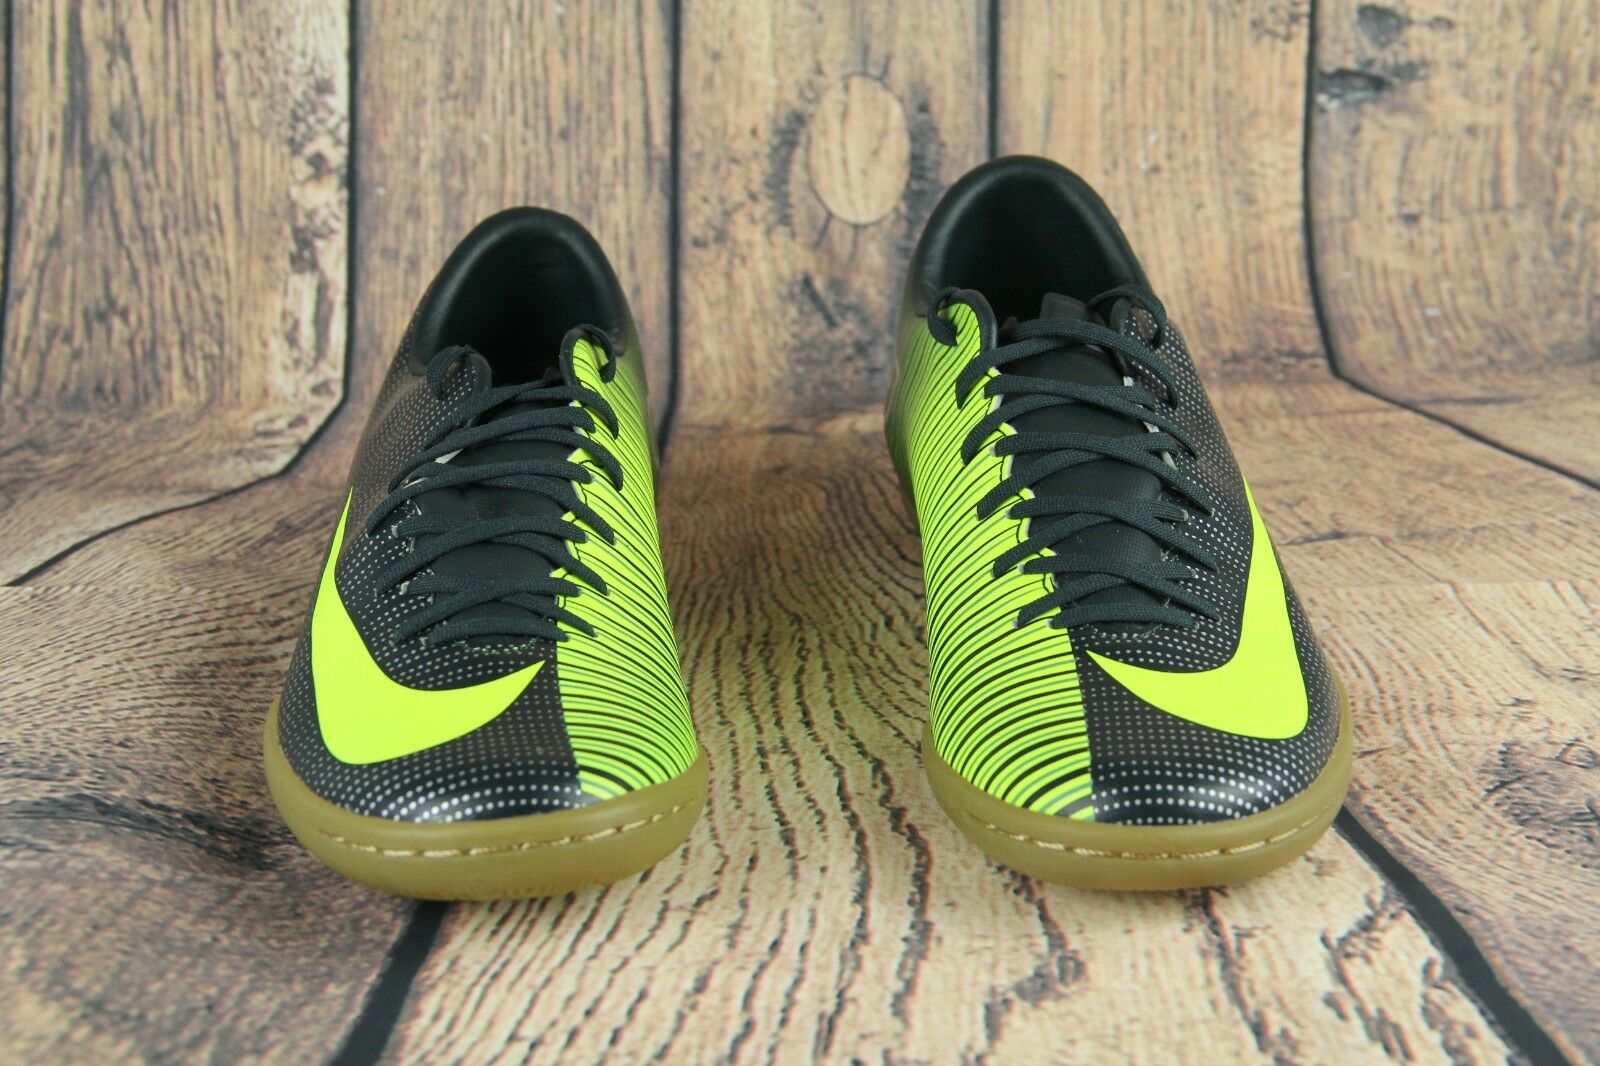 4207ee48ede NIKE MERCURIALX VICTORY VI CR7 IC SOCCER SHOES SEAWEED VOLT 852526-376 Size